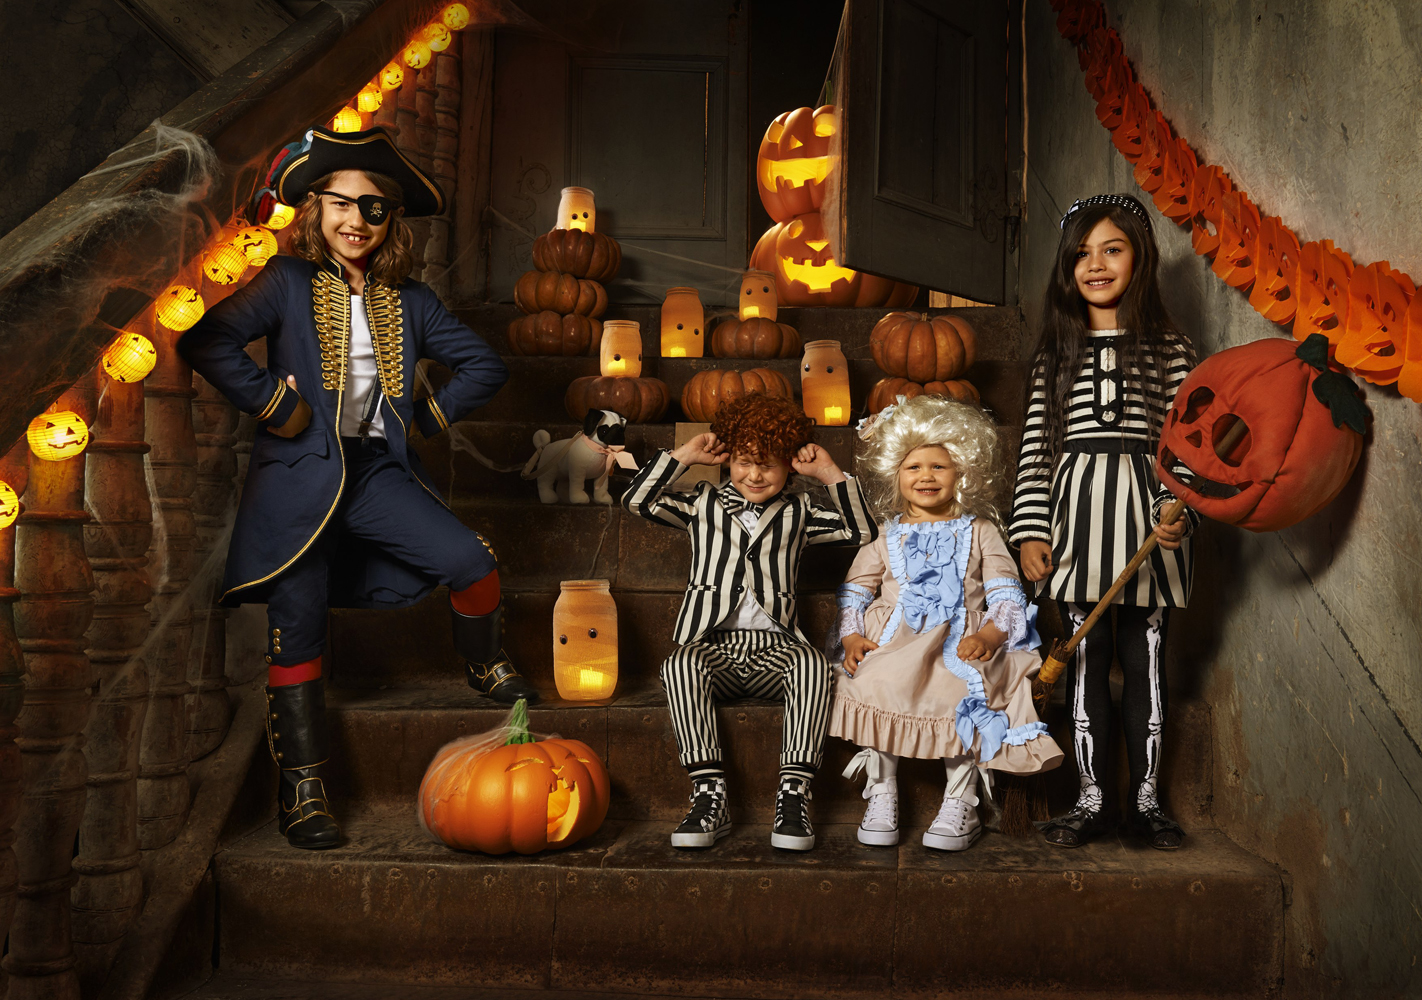 Outdoor Halloween Decorations and Costumes 2017